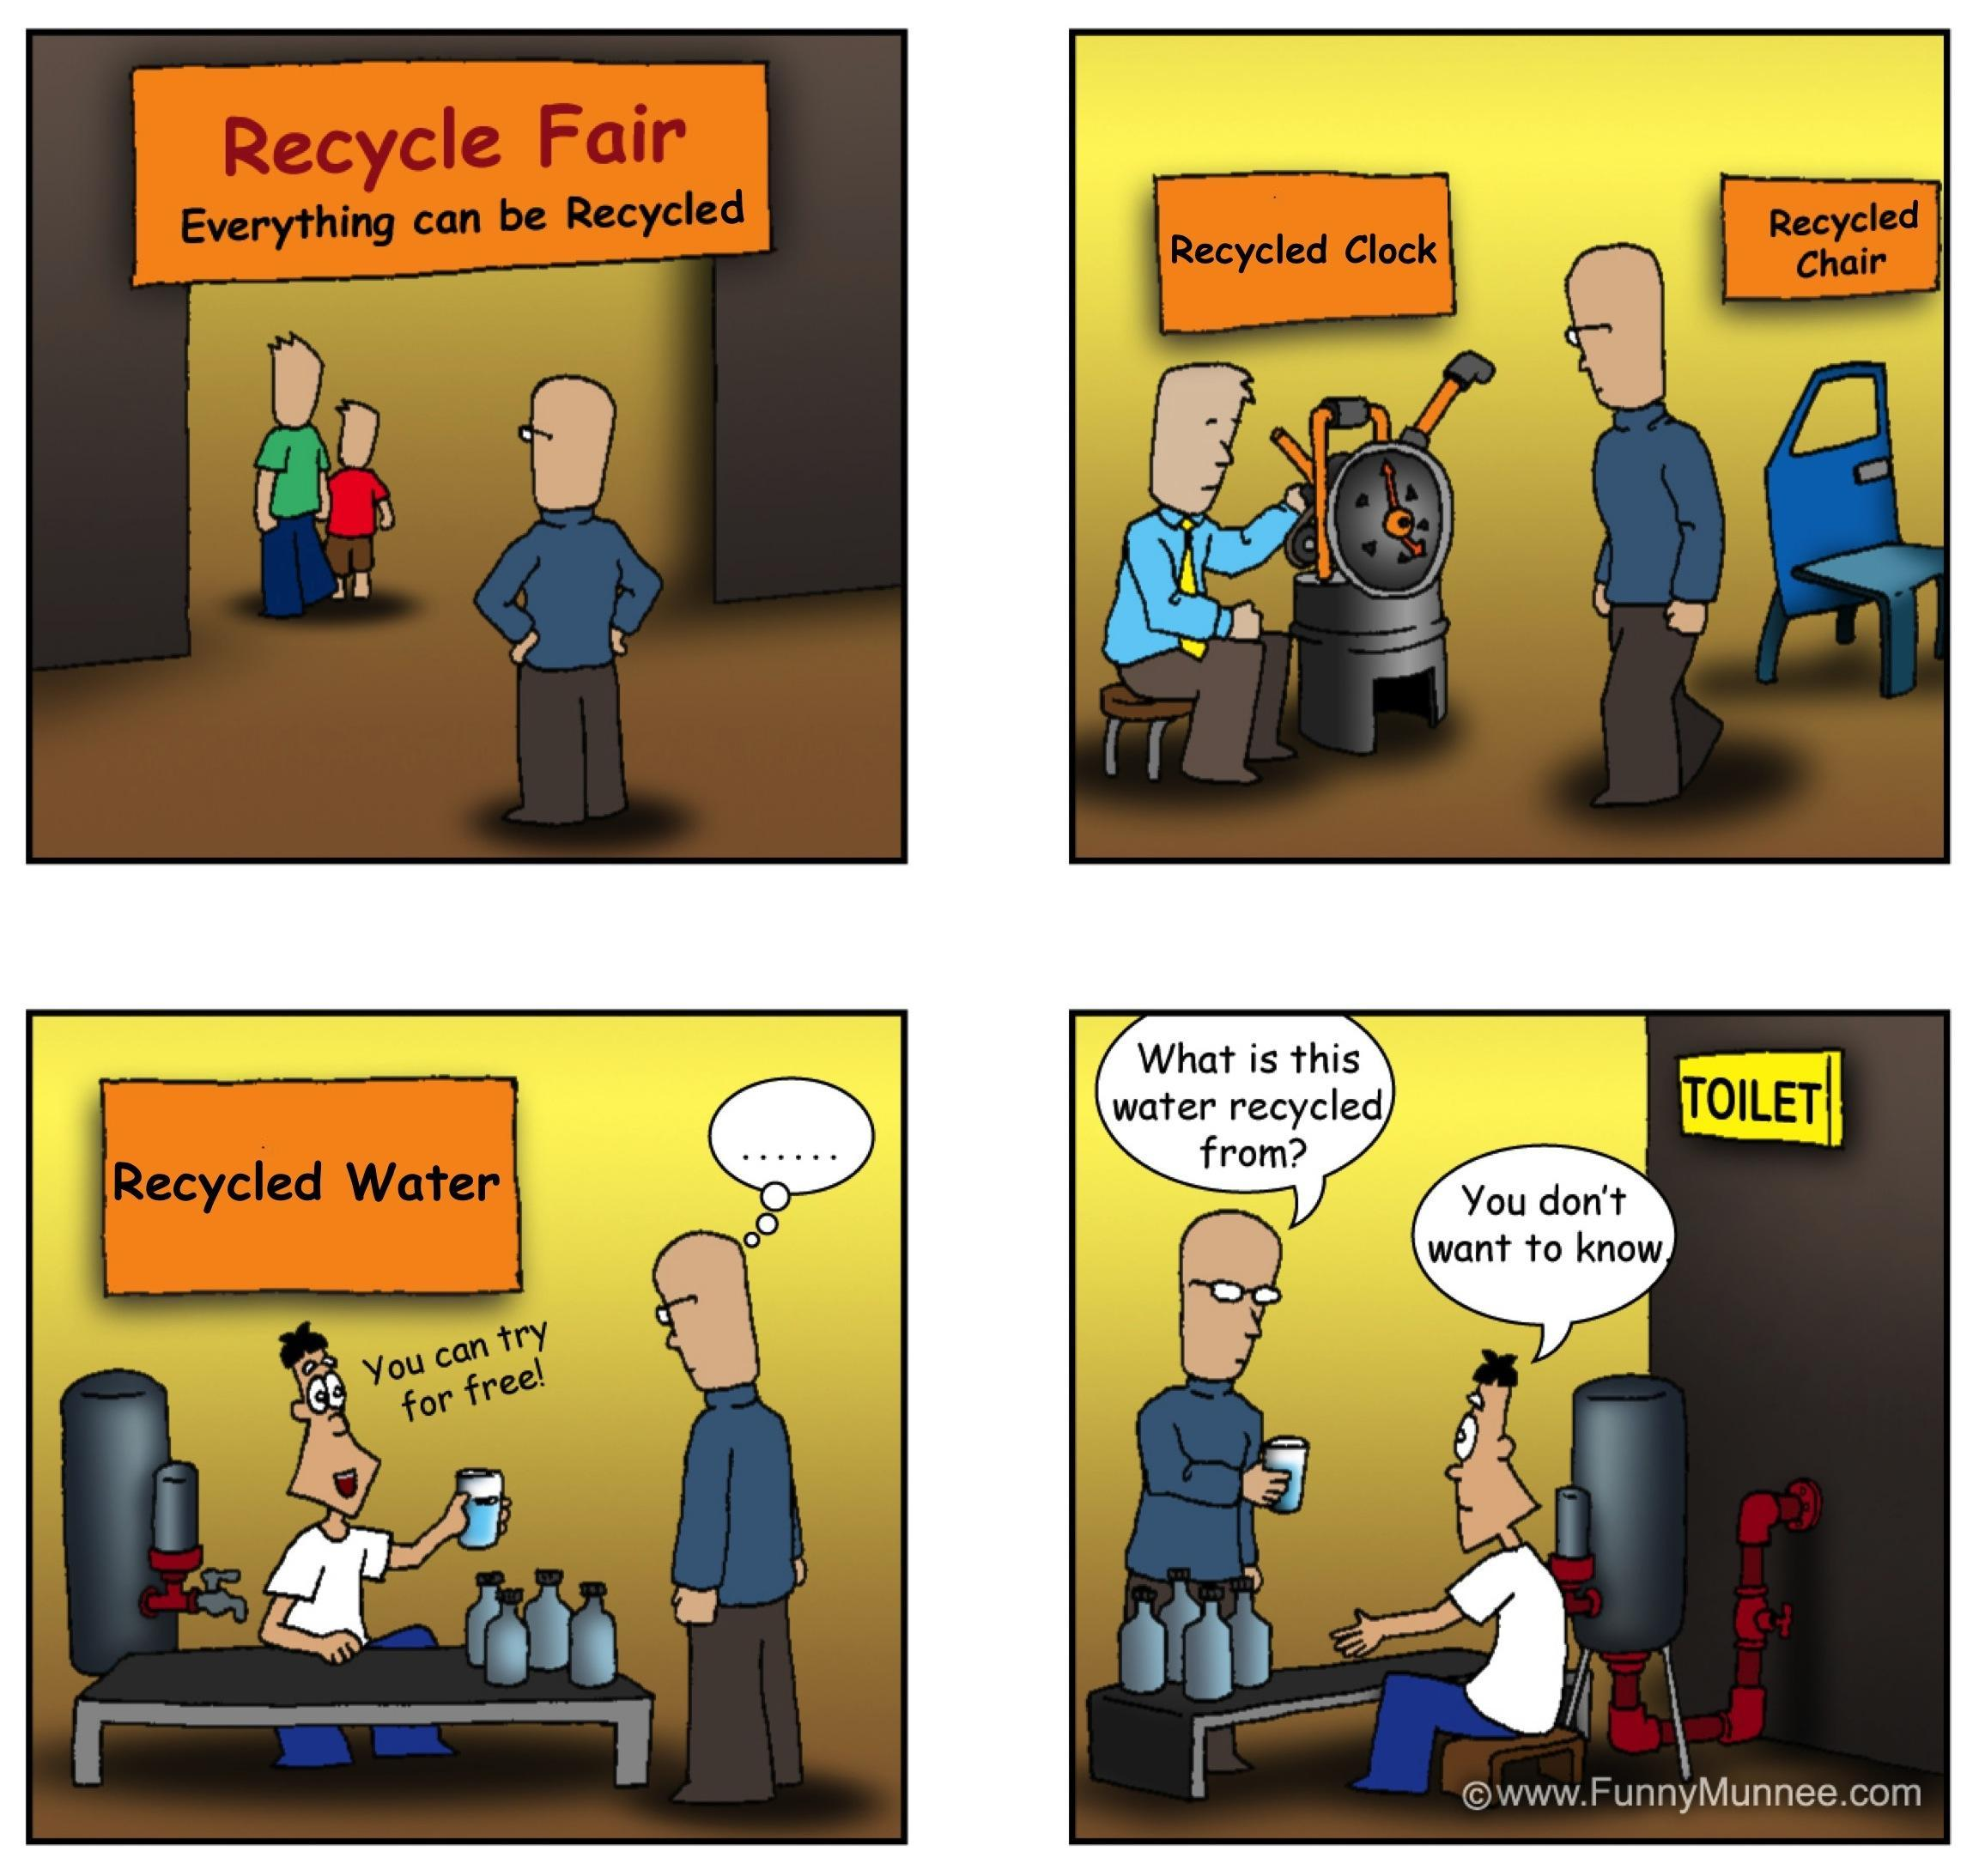 Recycled drinking water